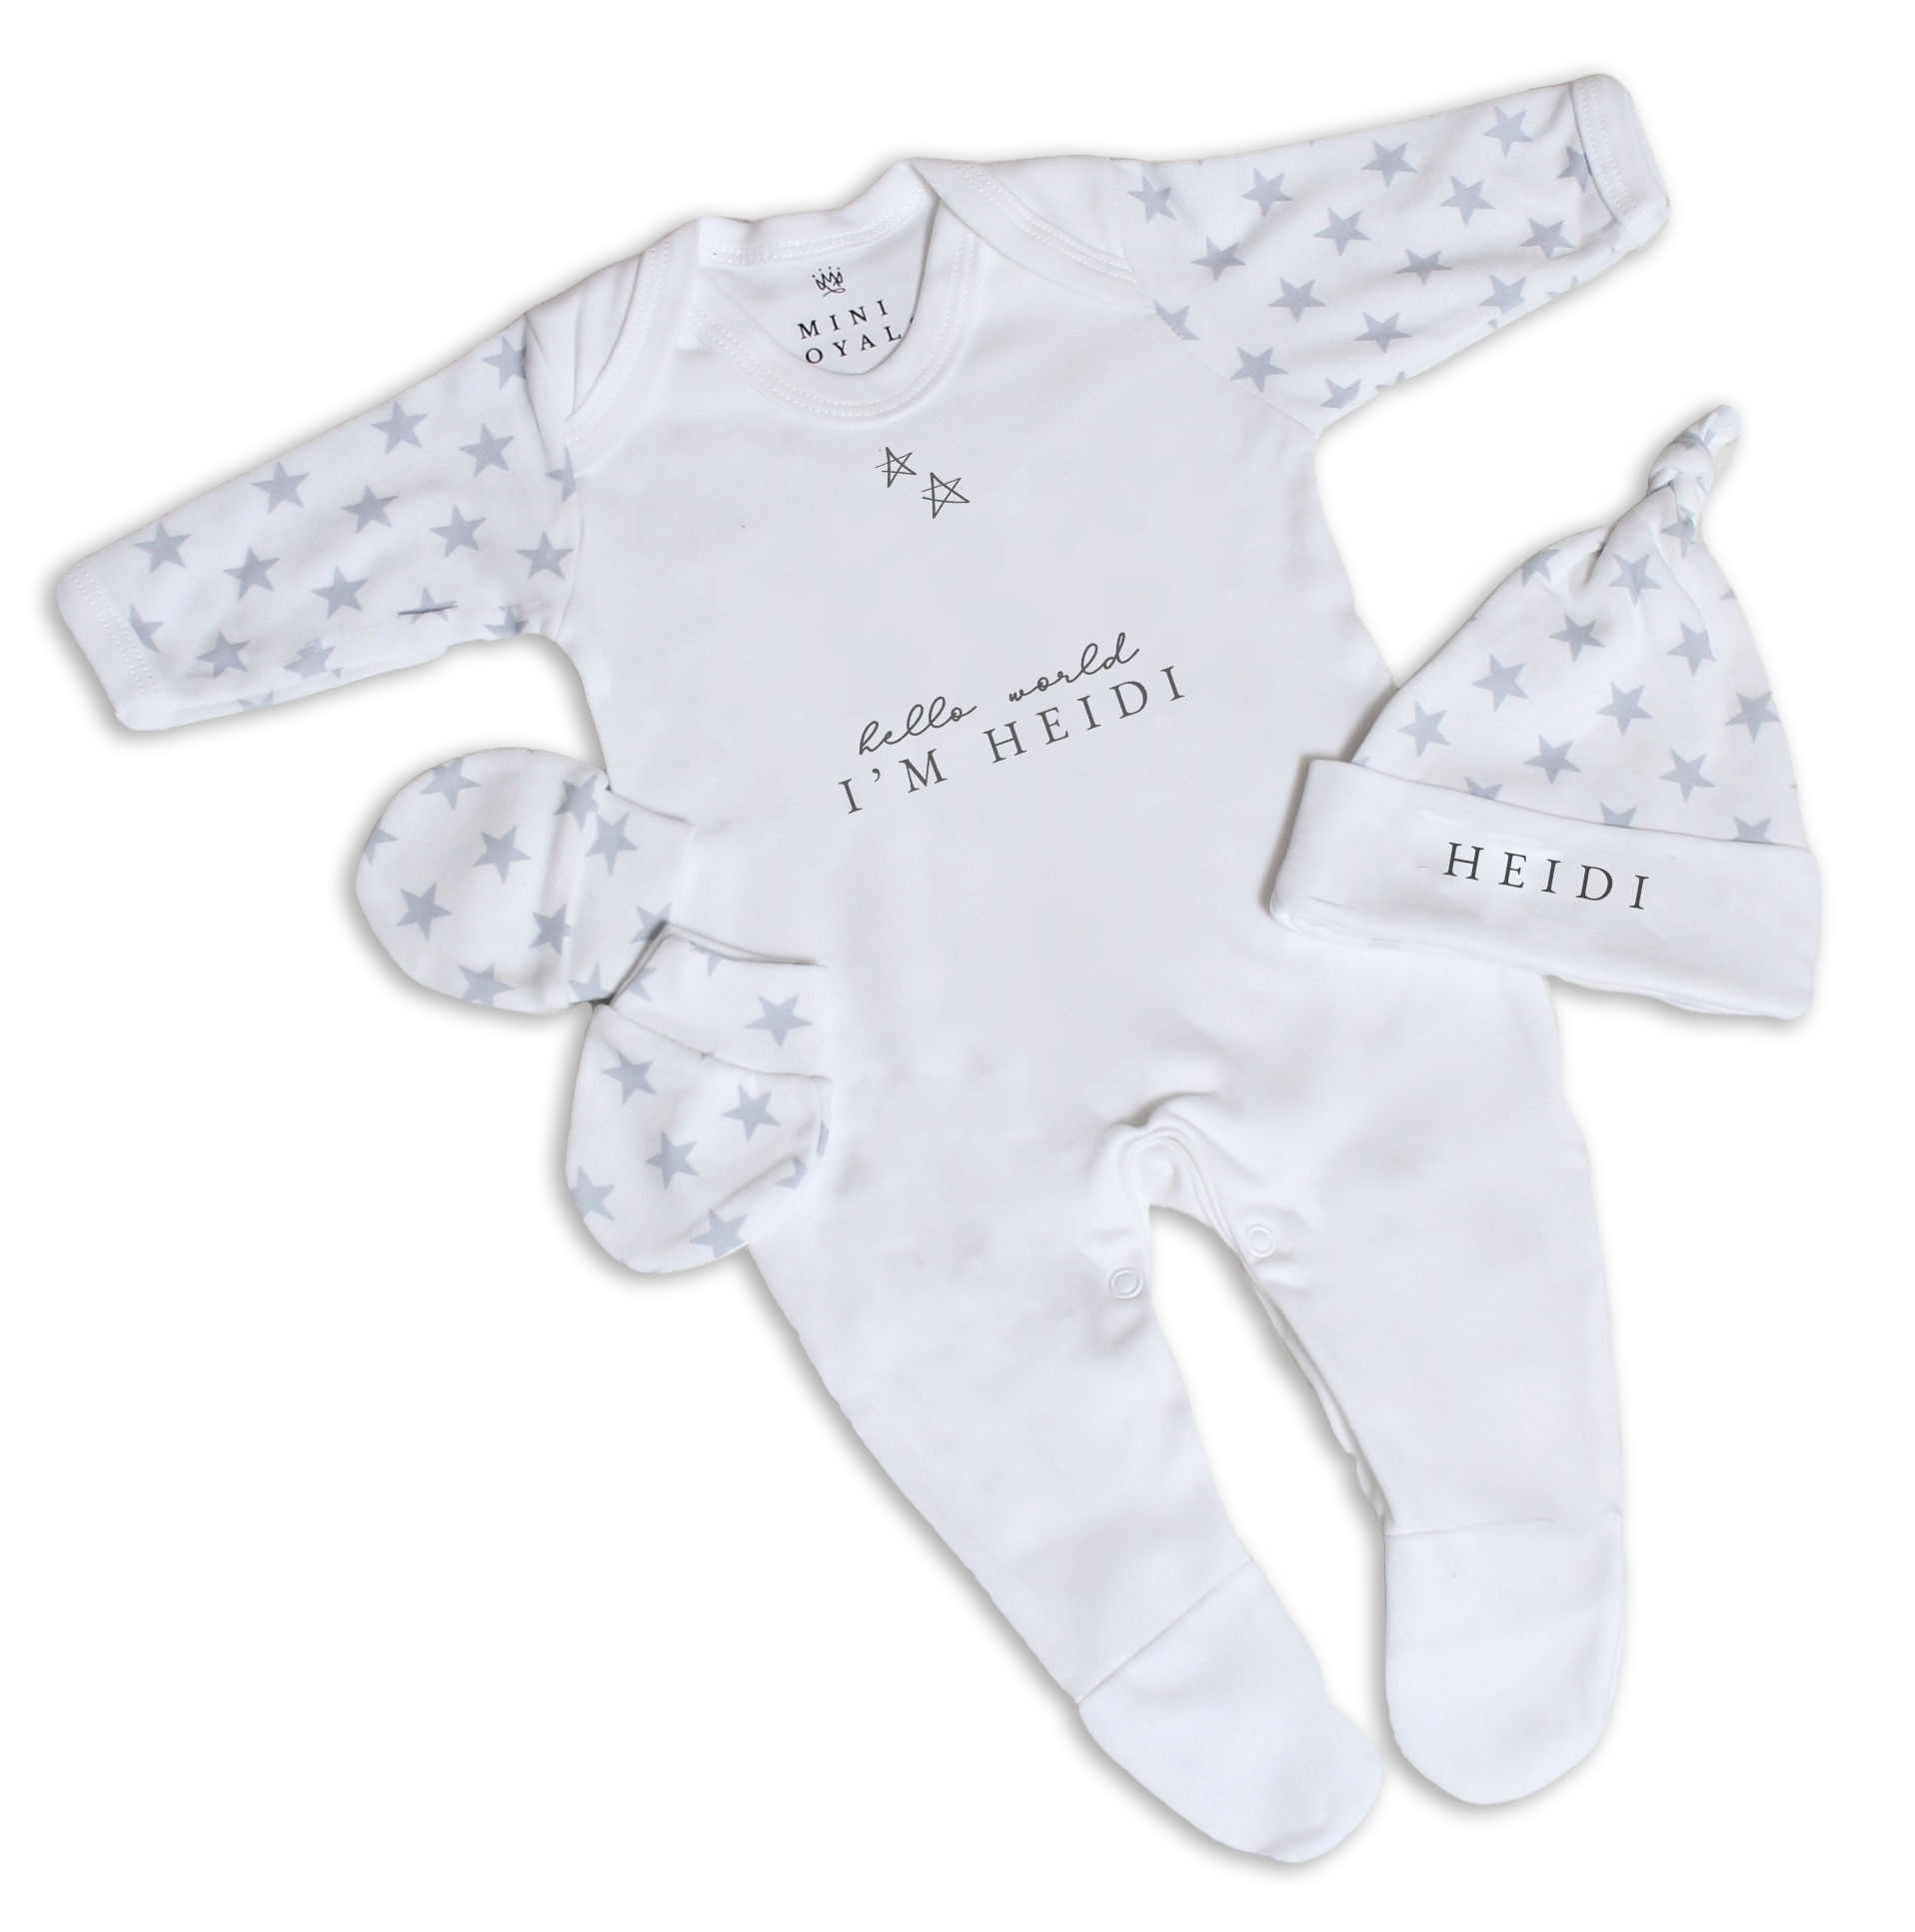 0-3 months, White Baby /& Toddler Girls Diamond Tights in 3 colours